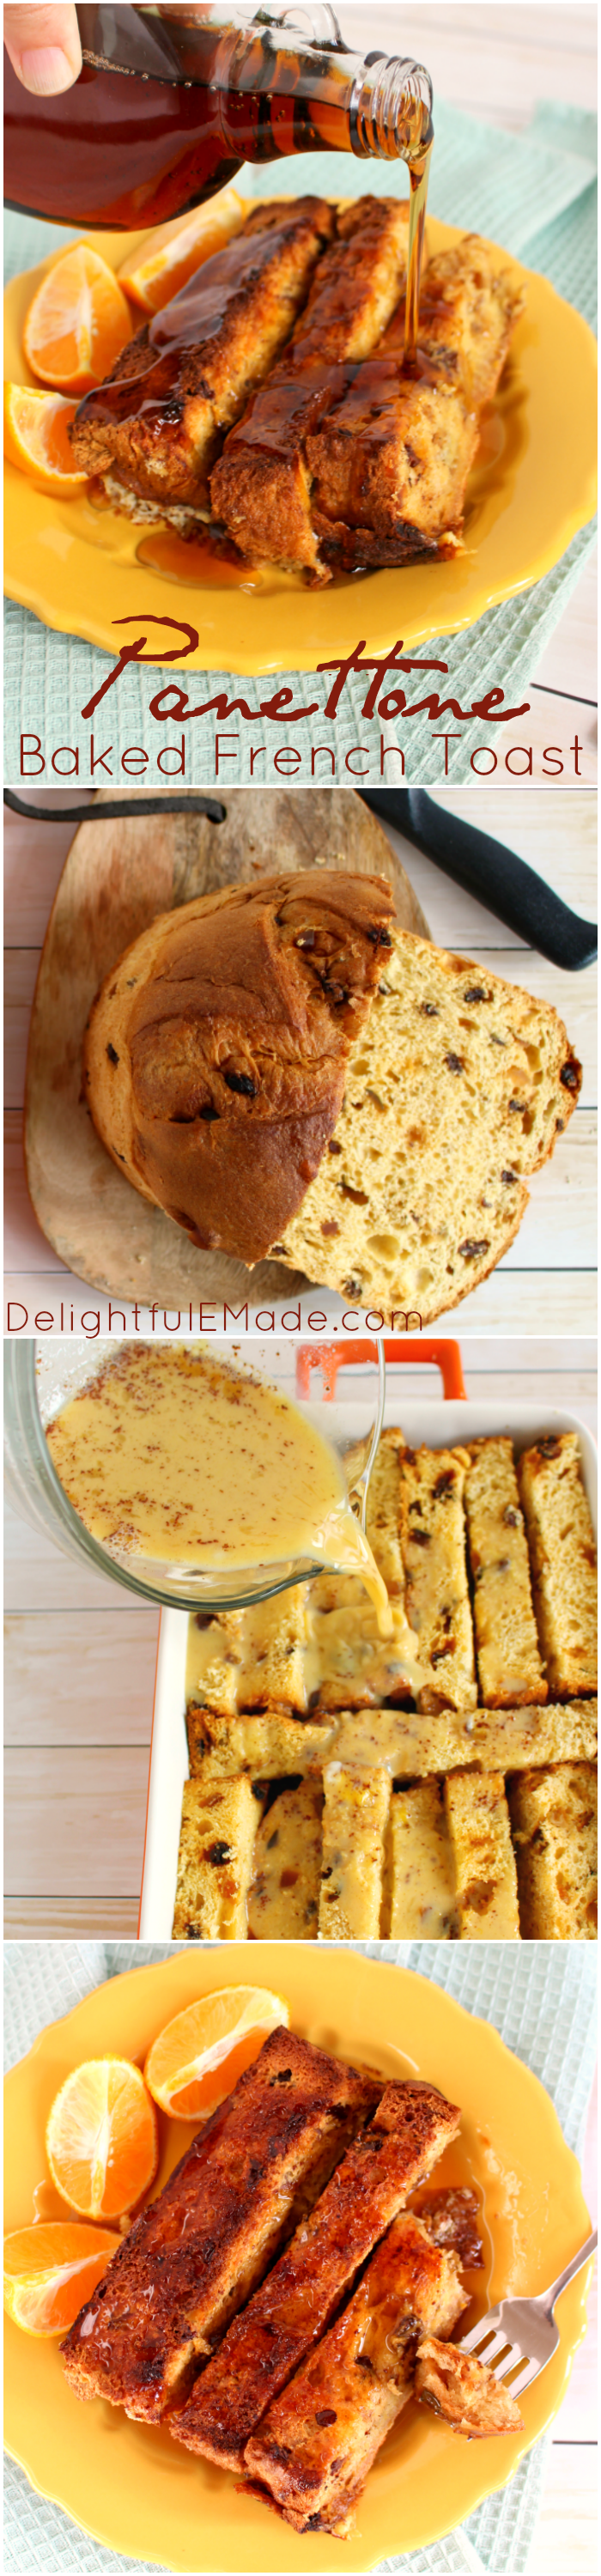 Did You Get A Panettone For The Holidays? Make My Panettone Baked French  Toast